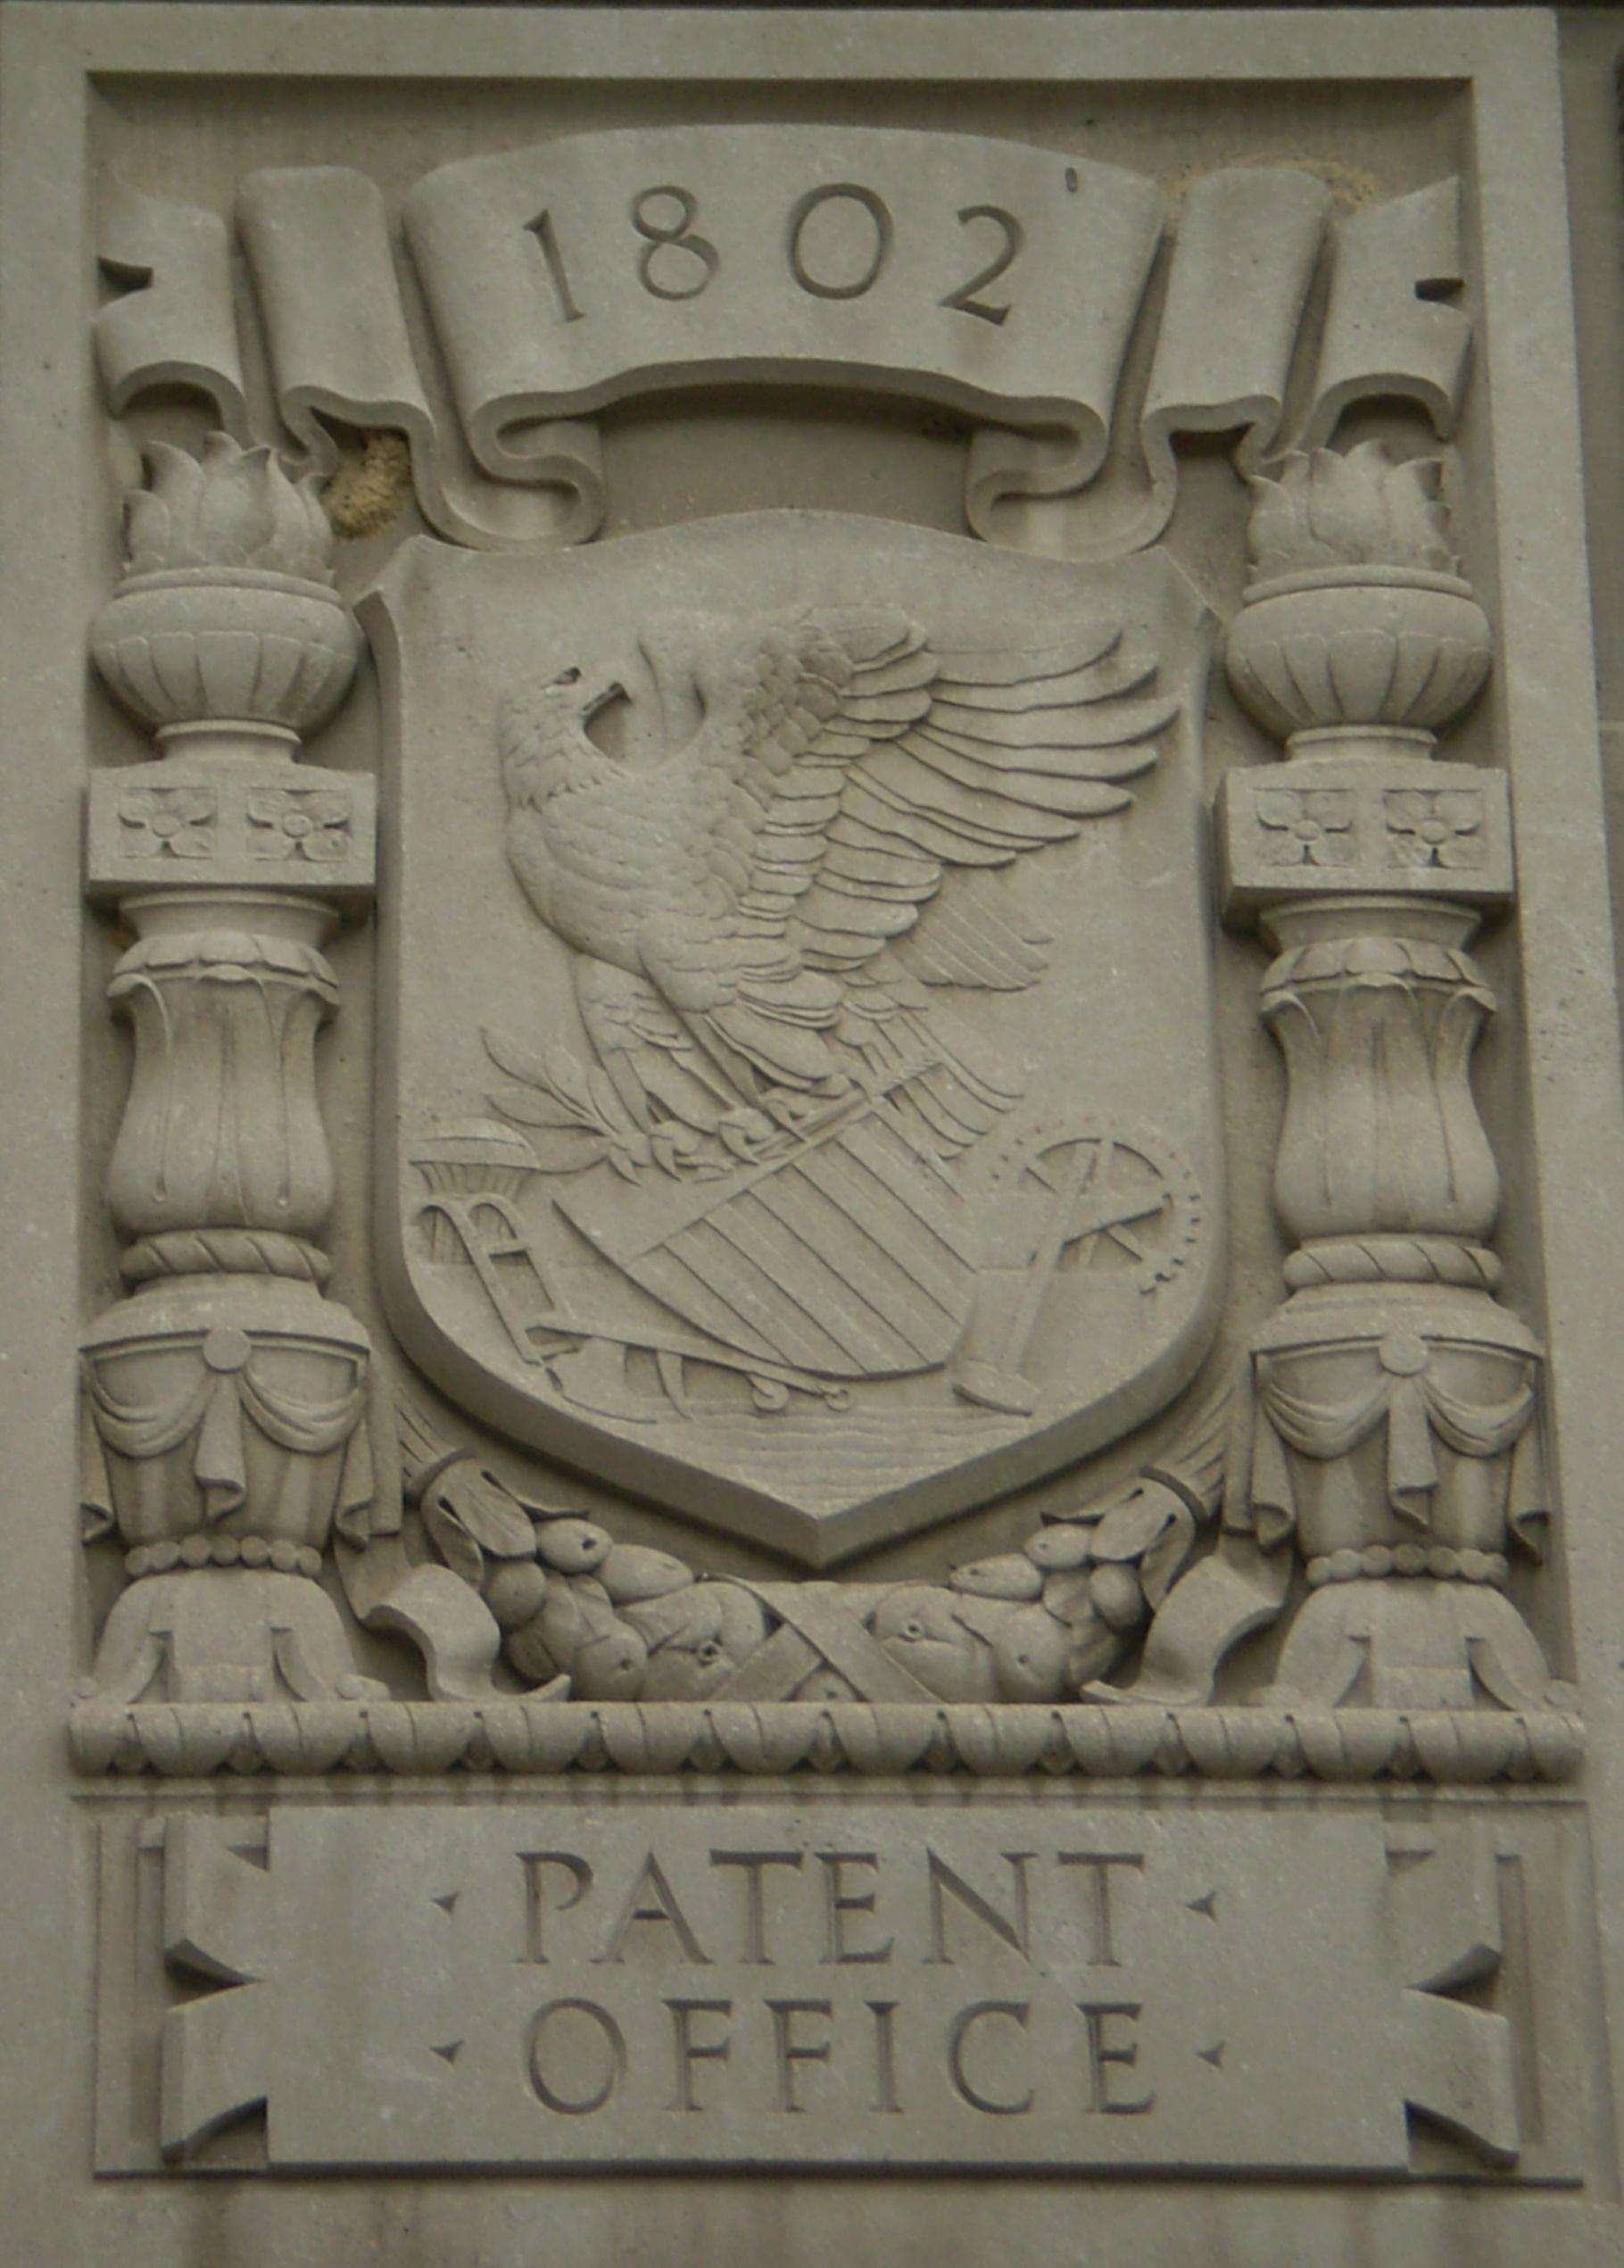 United states patent and trademark office wikiwand - United states patent and trademark office ...